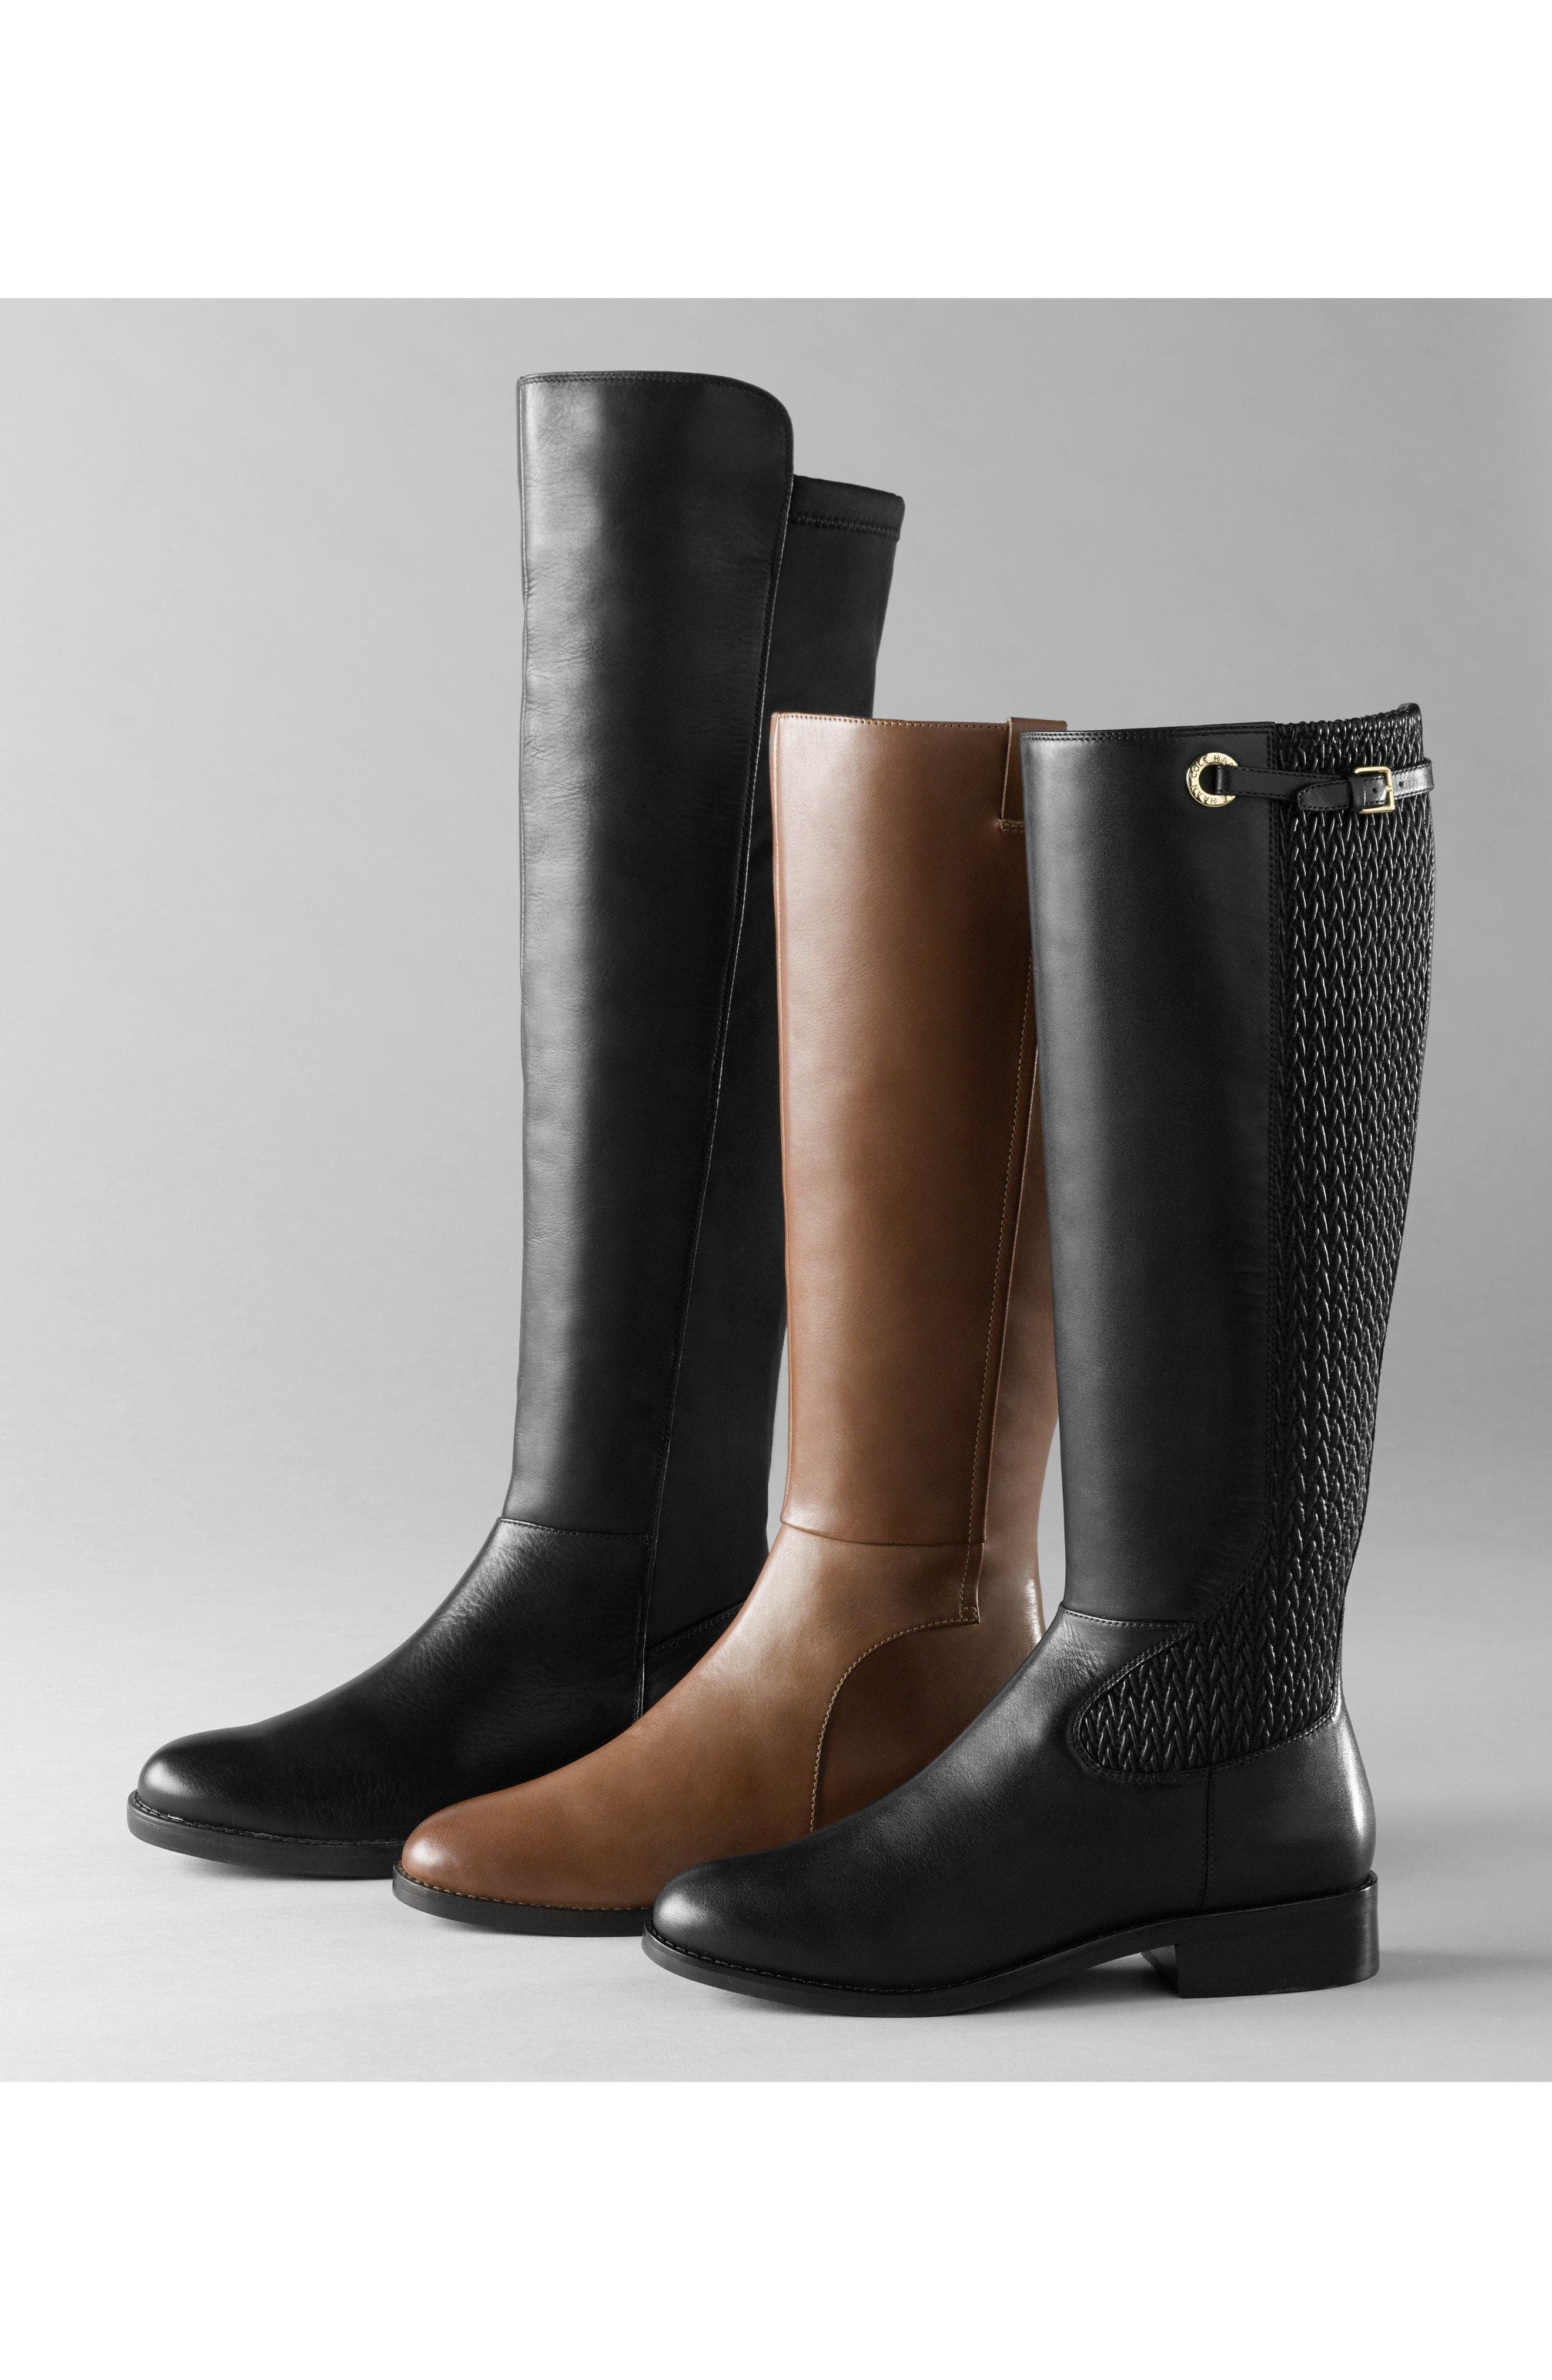 Olivia Knee High Boot,                             Alternate thumbnail 7, color,                             001